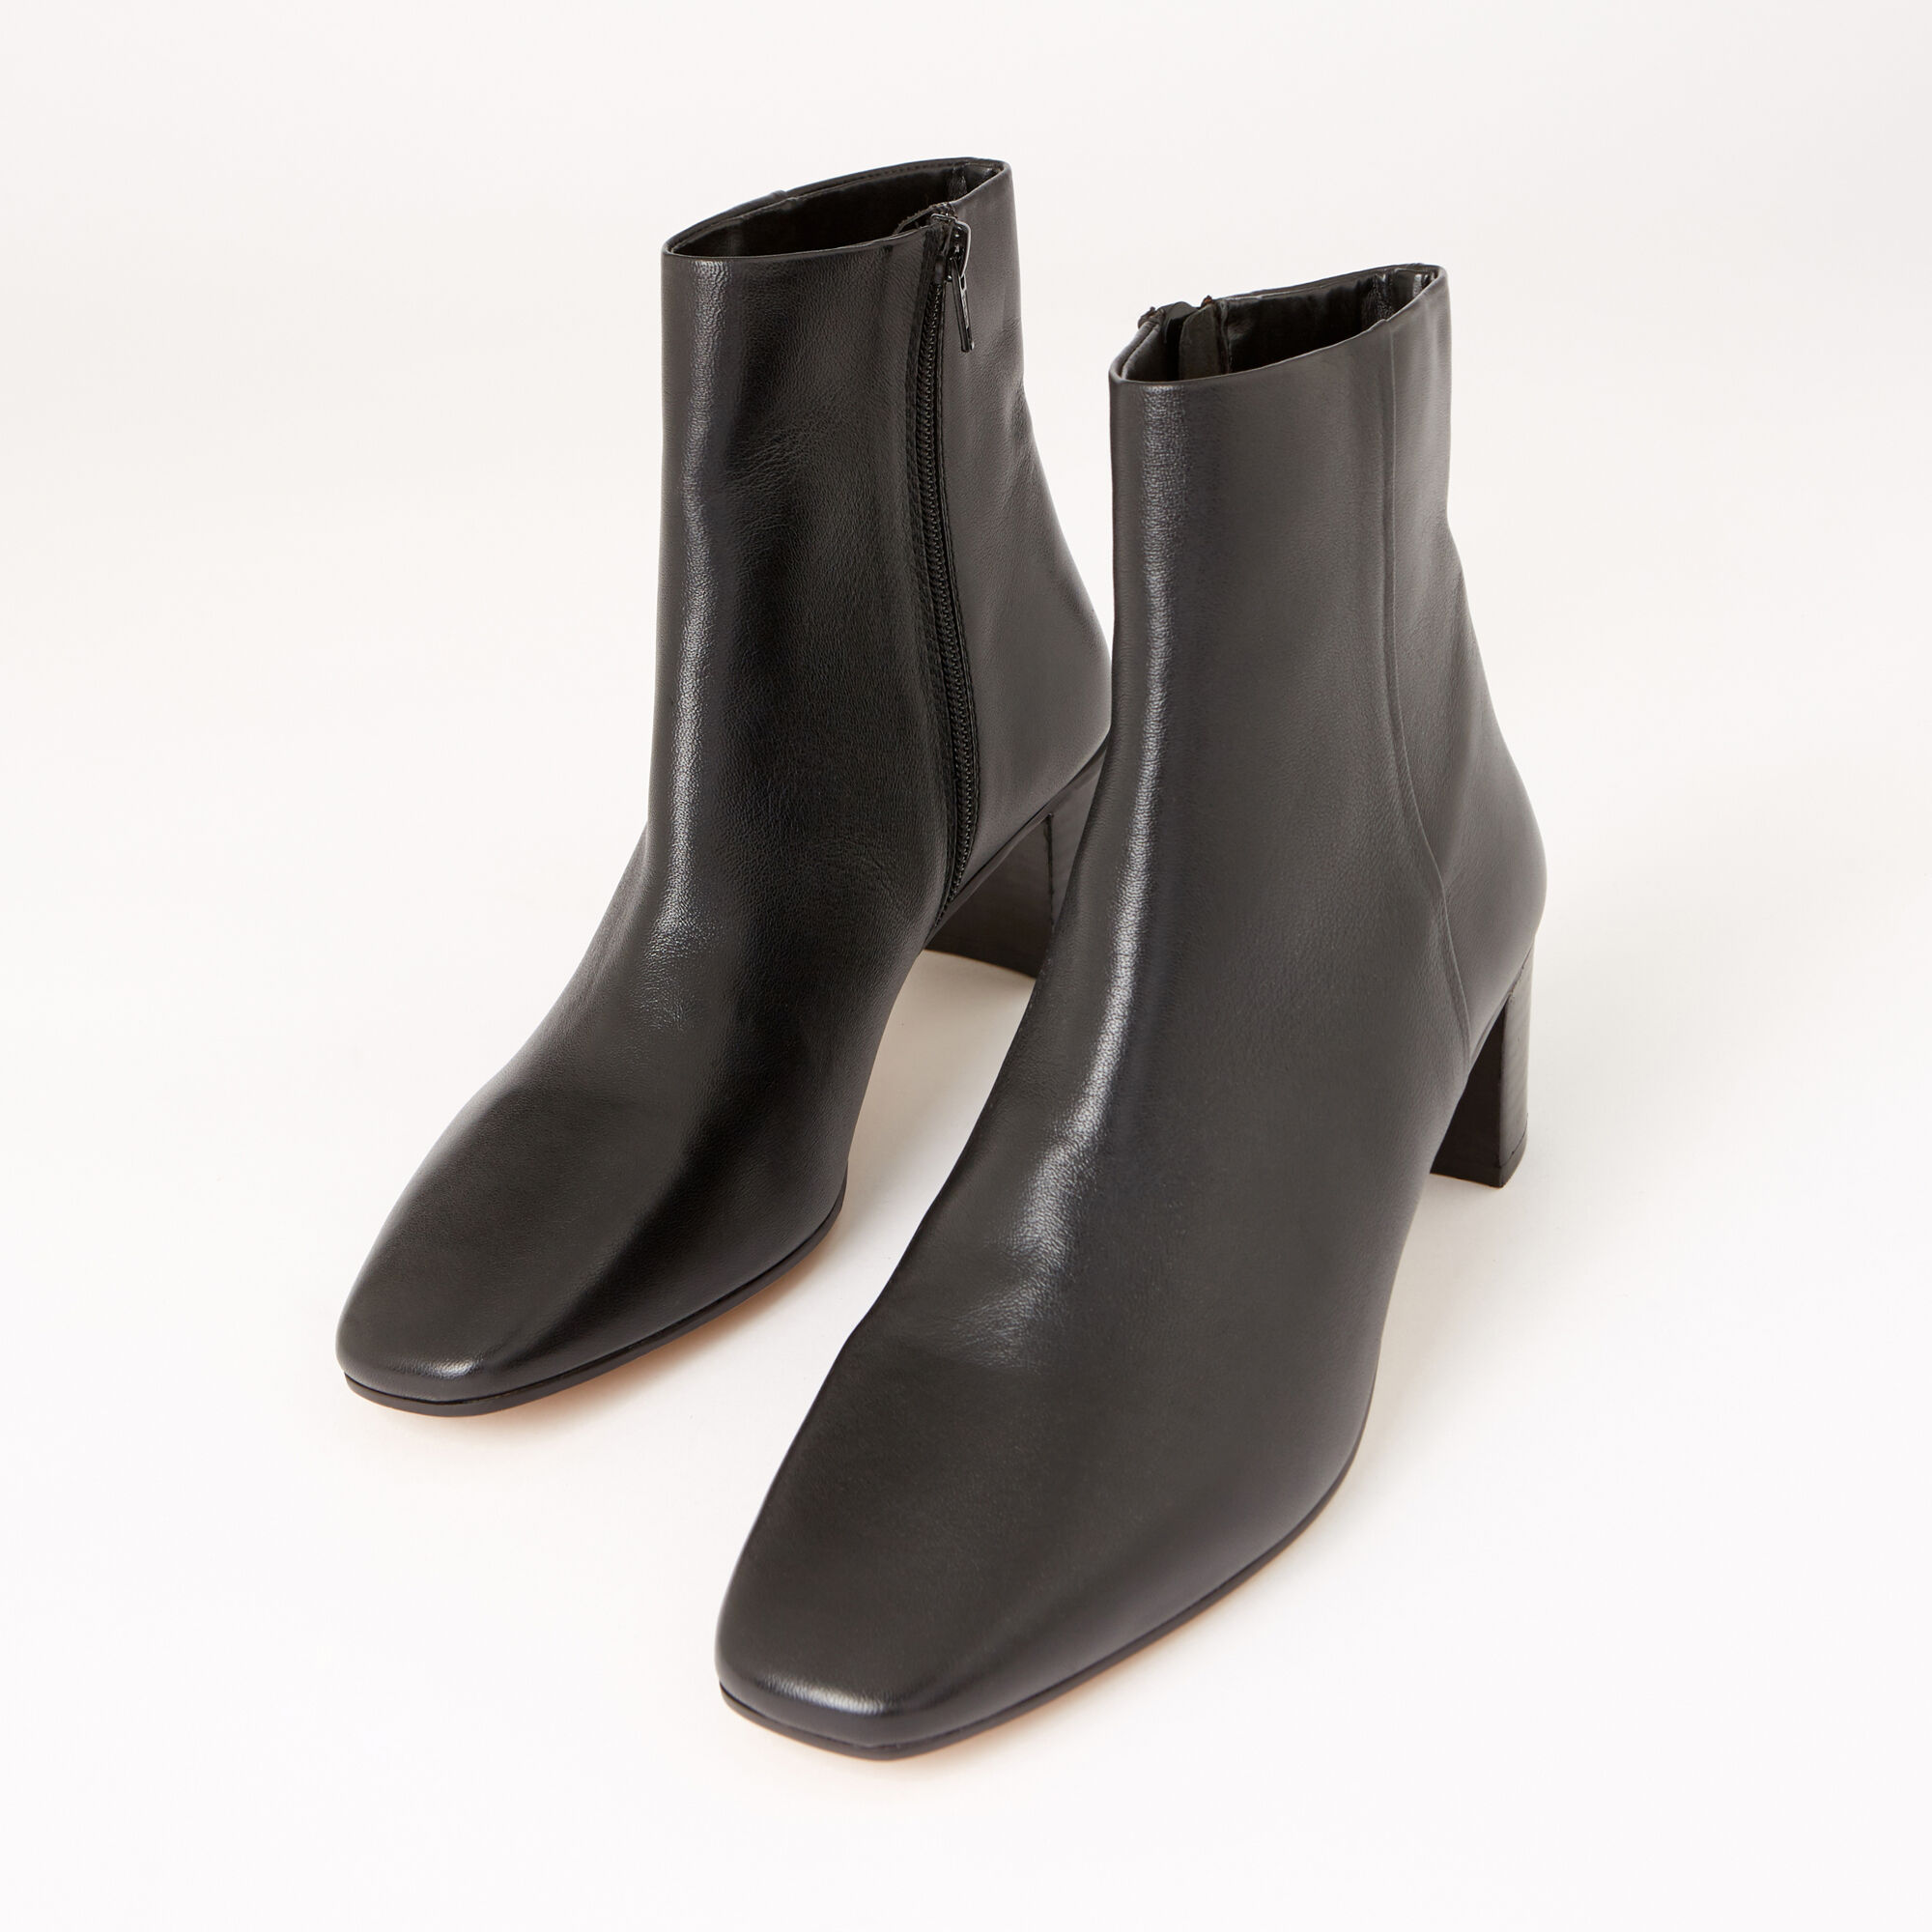 Warehouse, LEATHER SQUARE TOE ANKLE BOOTS Black 1